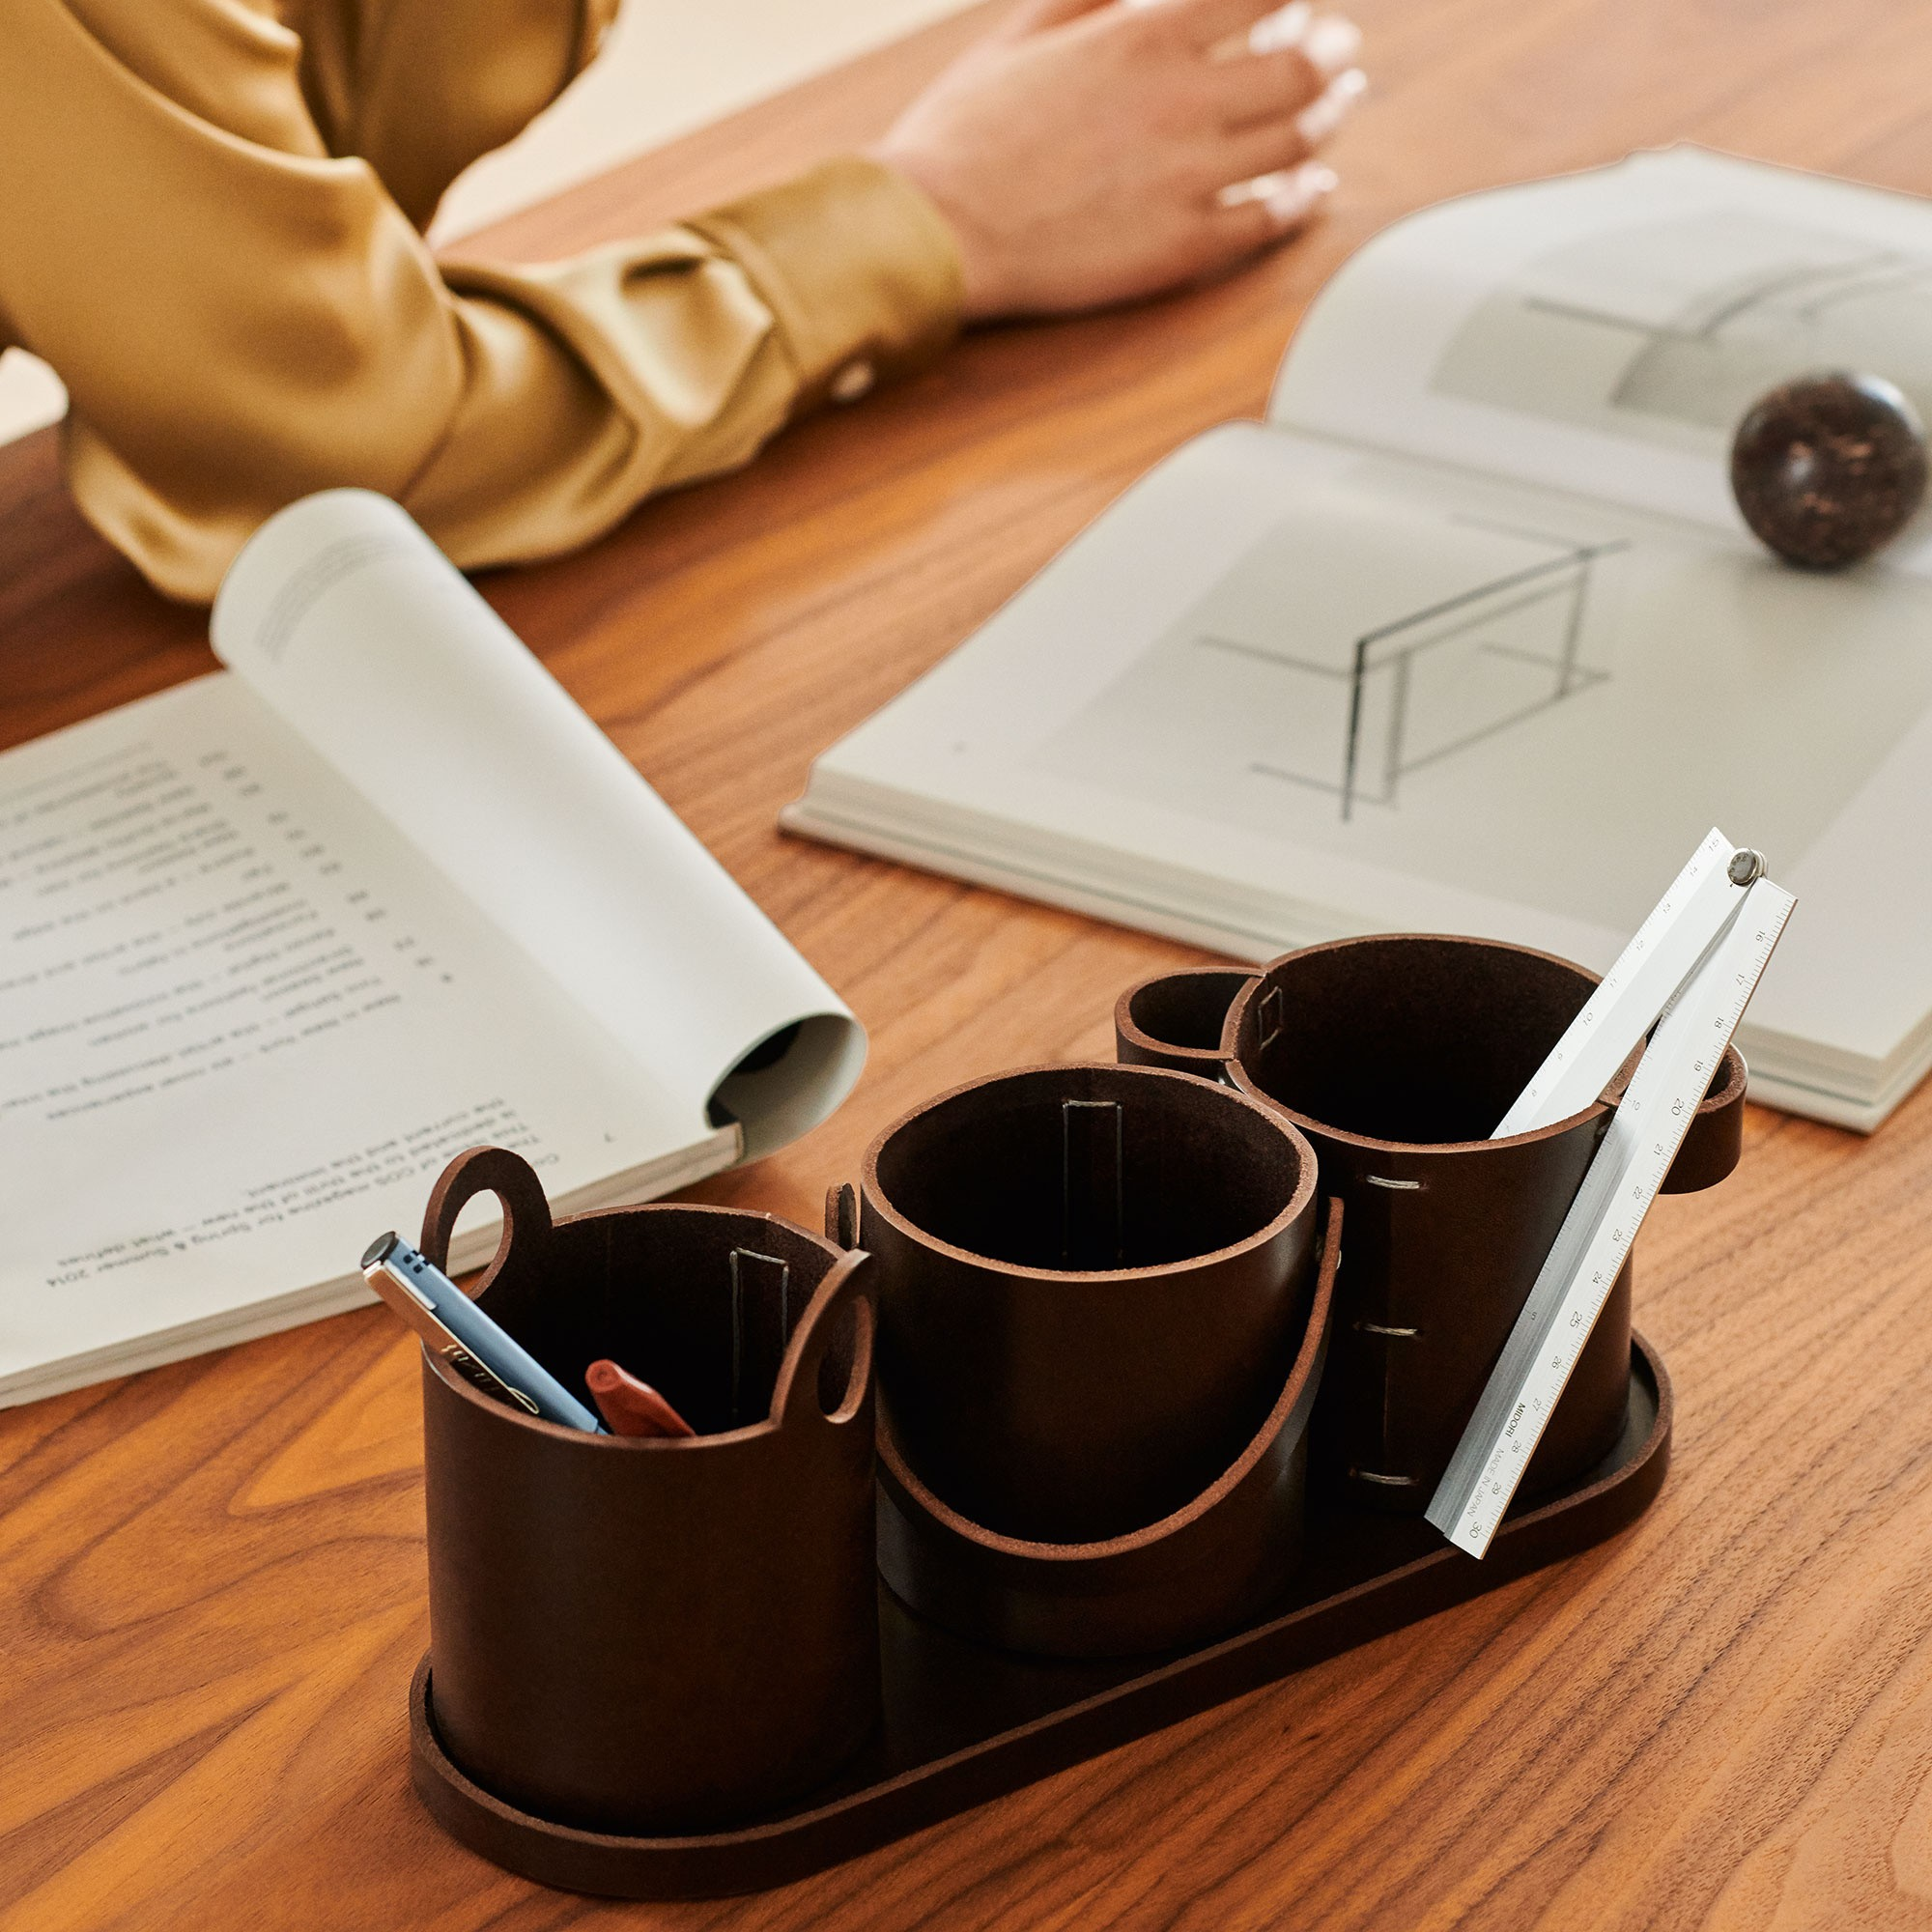 Buckets Desk Organiser - <p>Originally designed for an exhibition as large, outdoor objects in steel, Buckets is reinterpreted as a series of scaled-down vessels suitable for organising writing implements.</p> <p>Designed to be used together, the set comprises three bucket-shaped penholder pots, each with distinctive handles. </p> <p>The tray beneath can be used alone to keep keys, paperclips or other small desk essentials within easy reach, and always in the same place.</p>  | Matter of Stuff